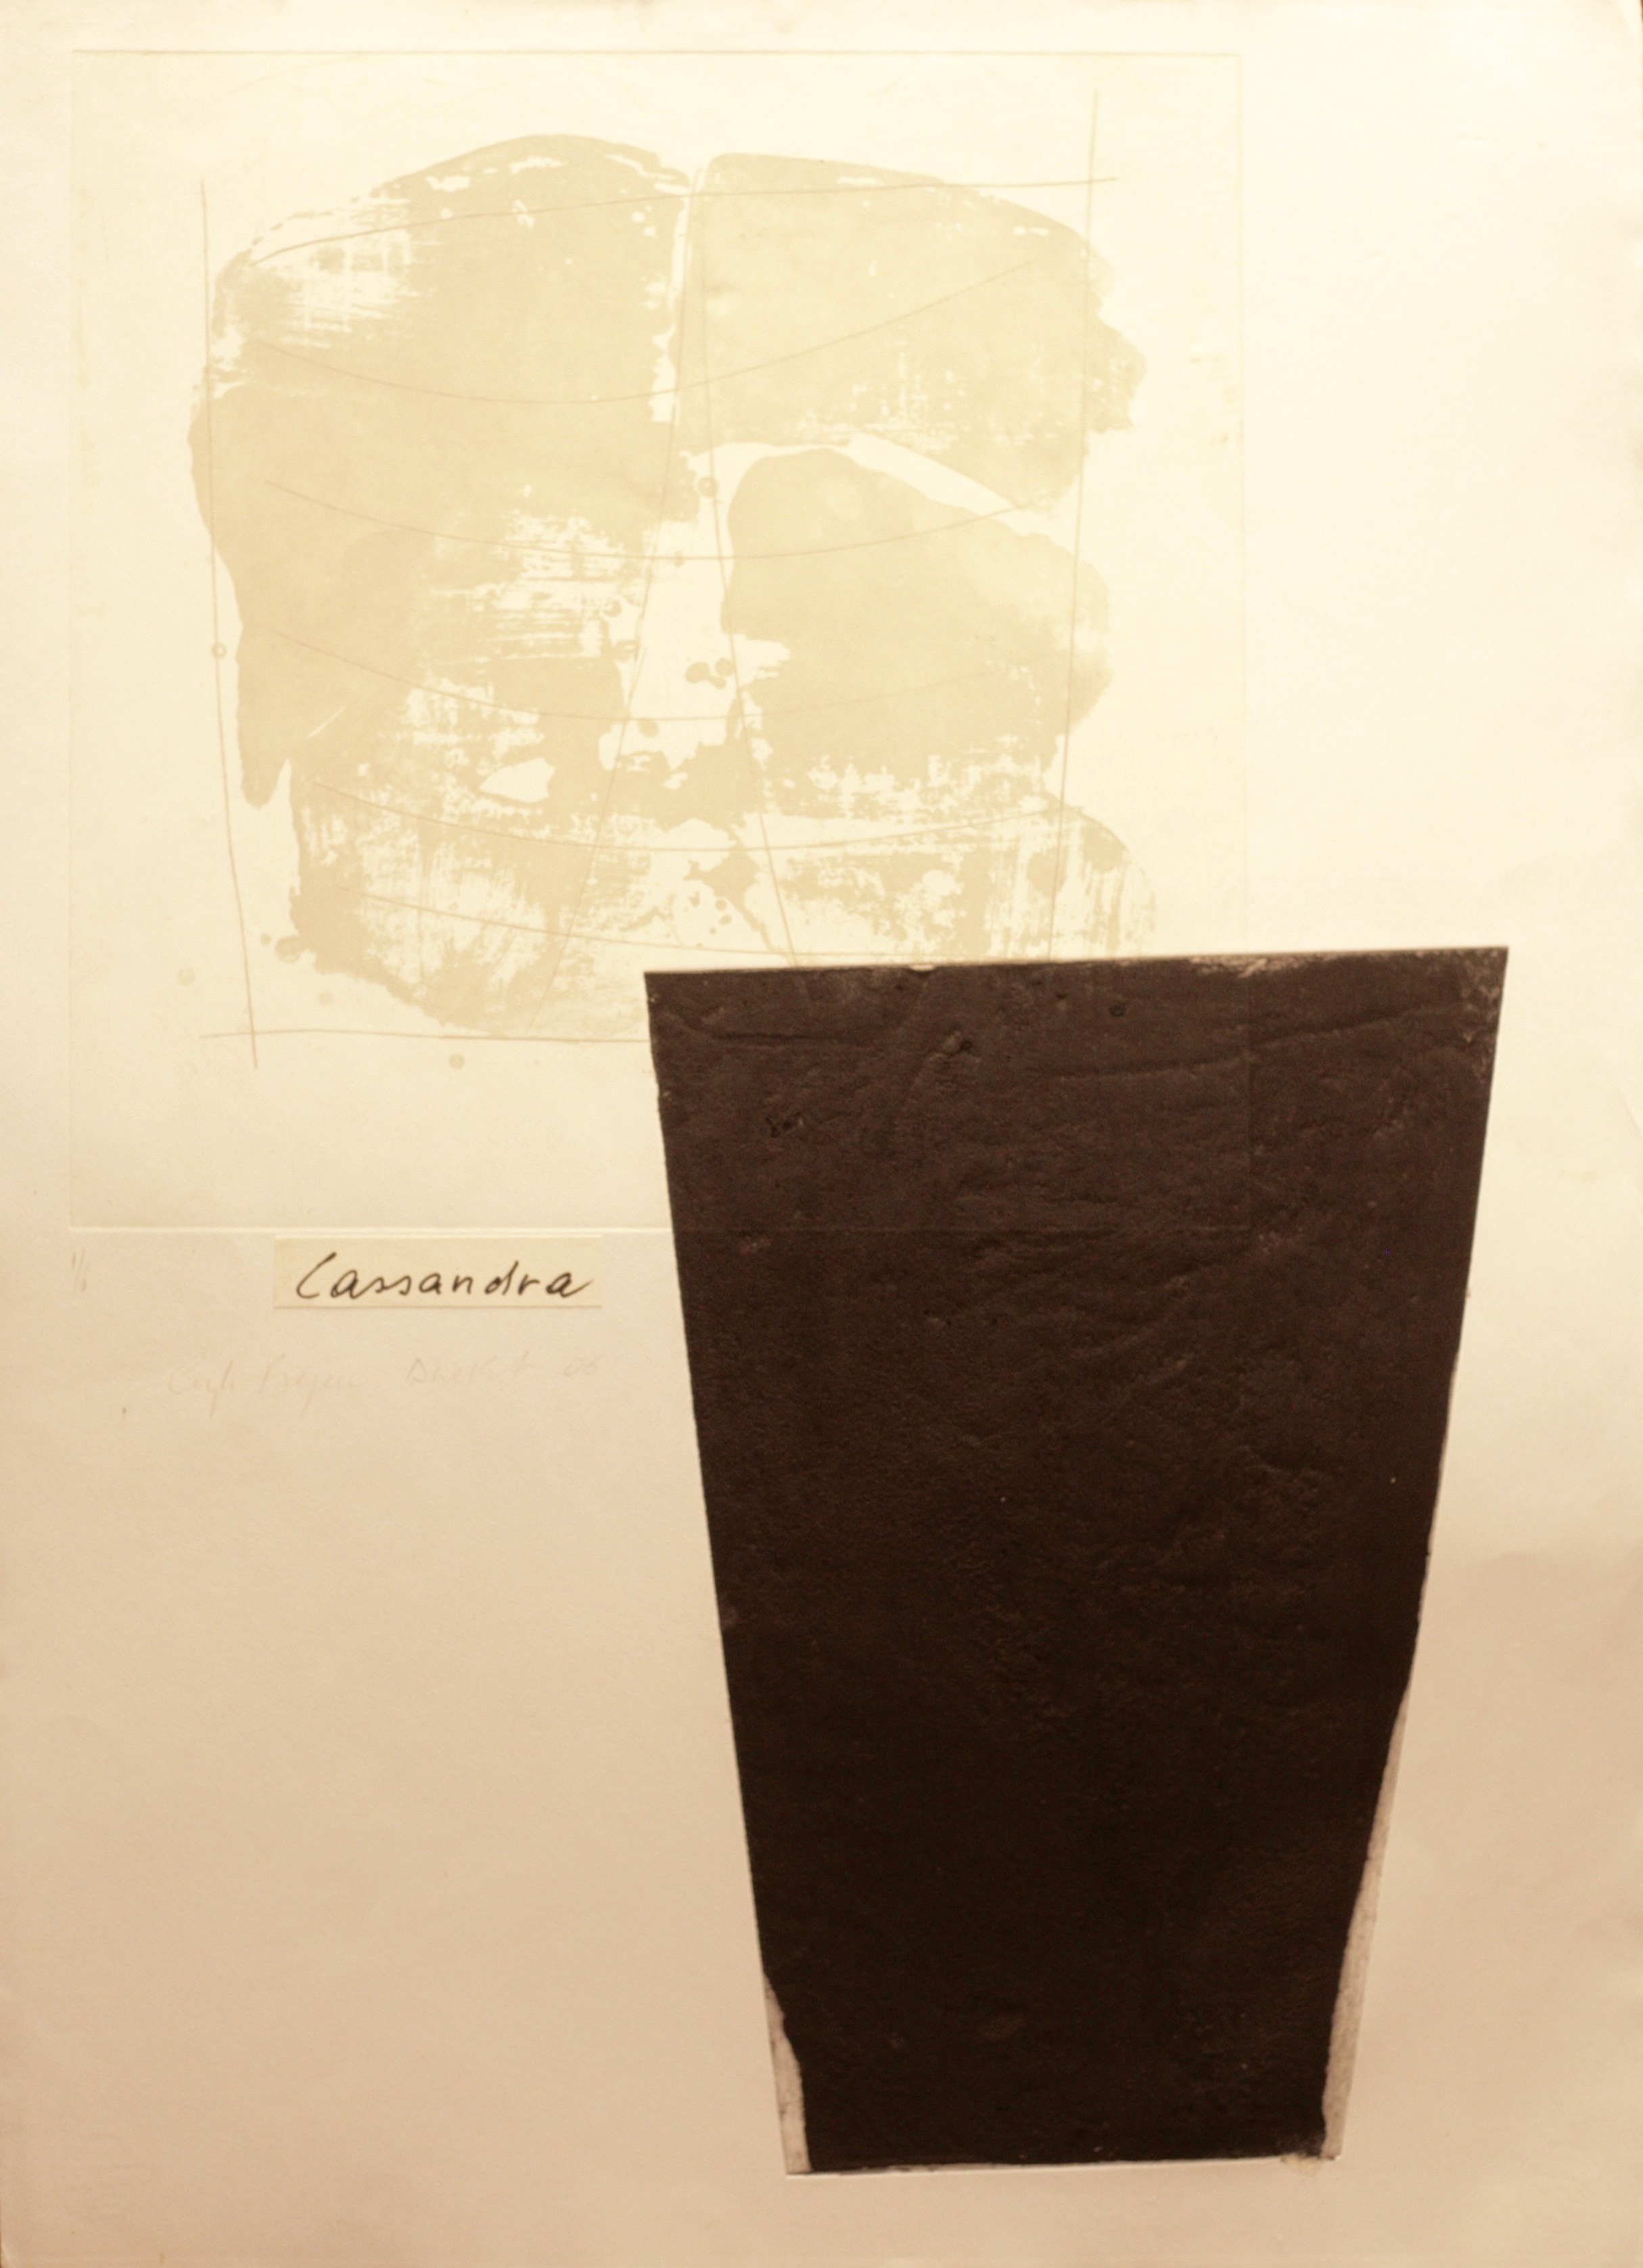 Angela Brignone Duckert - Cassandra, graphic print